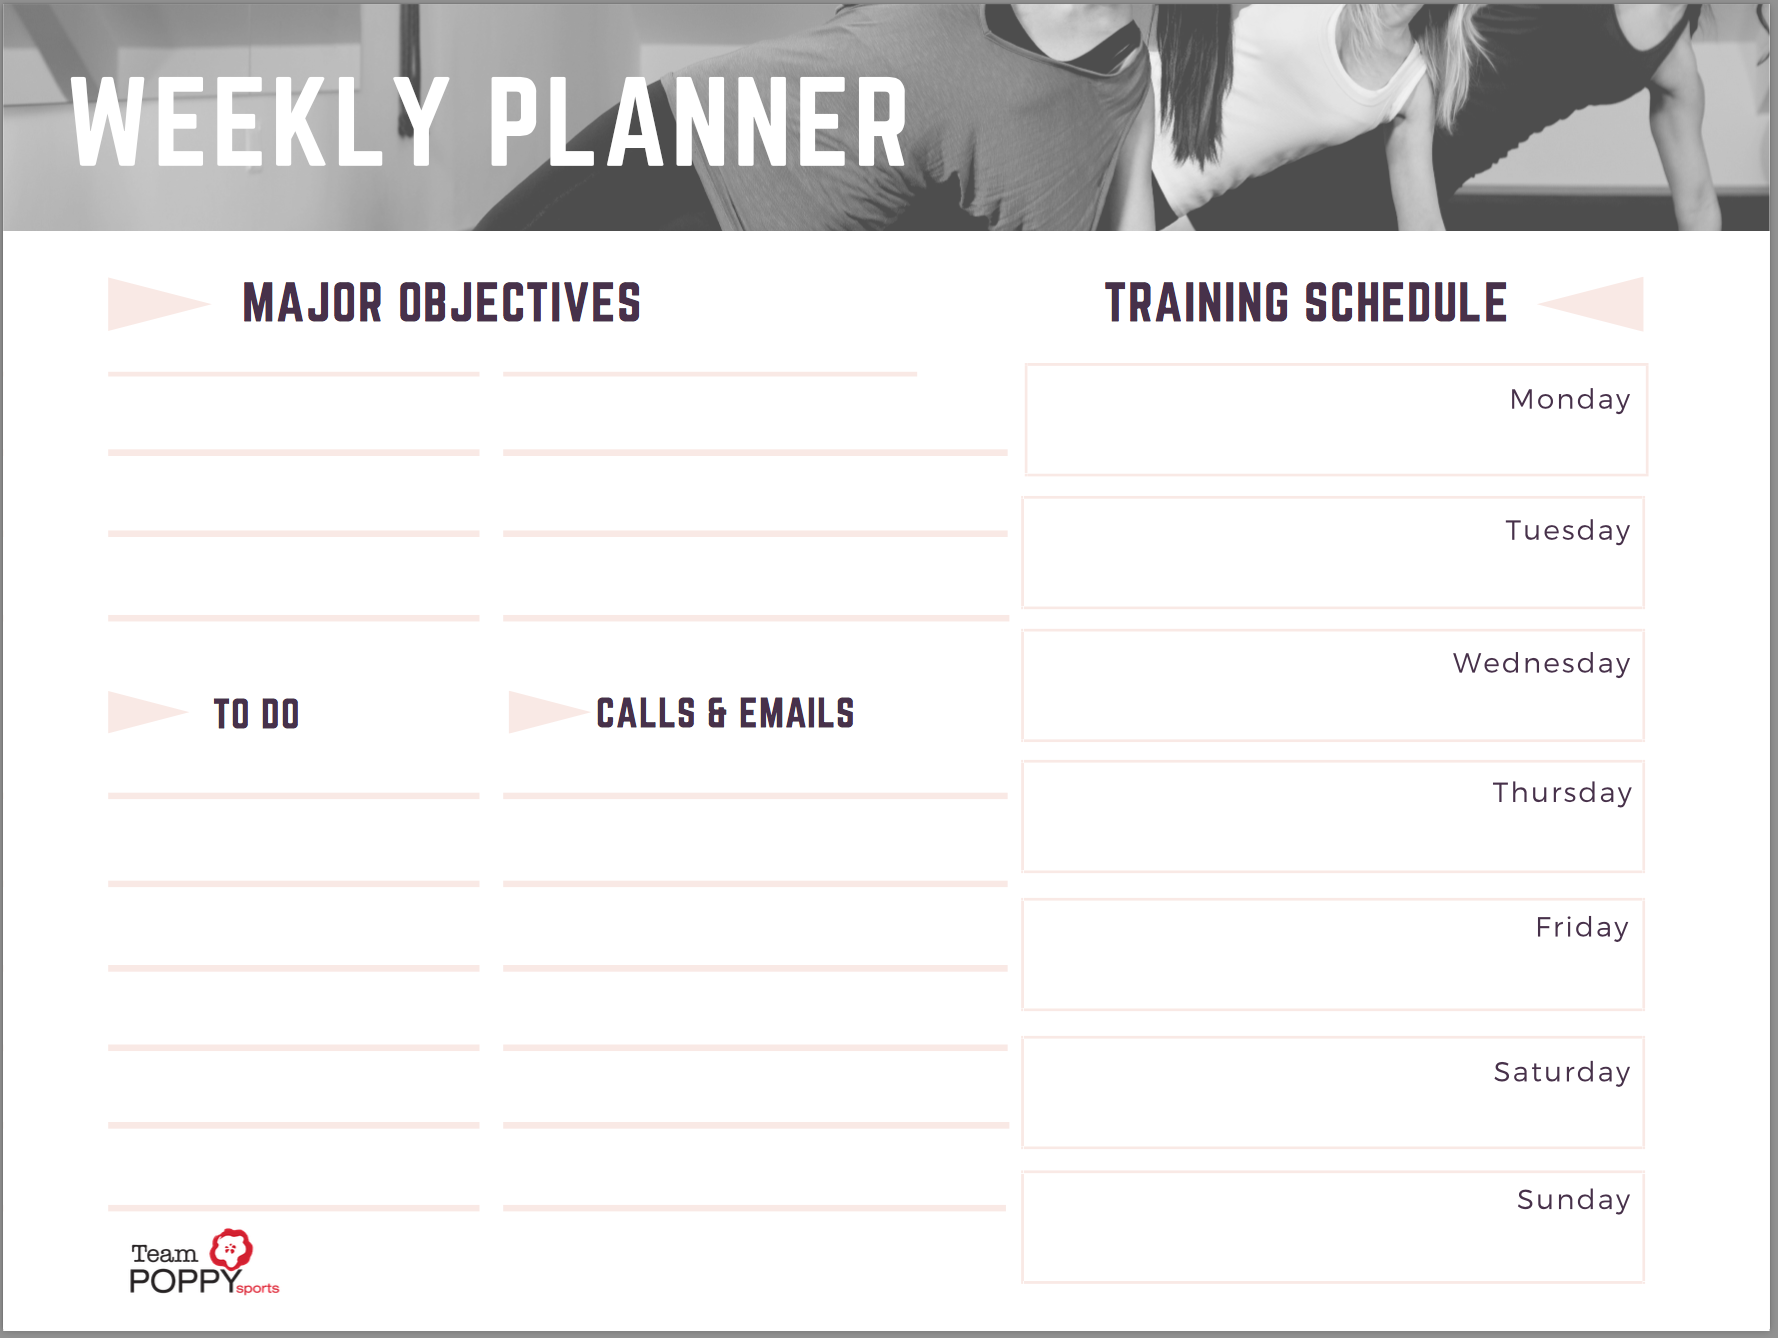 Download the Poppy Sports Weekly Planner